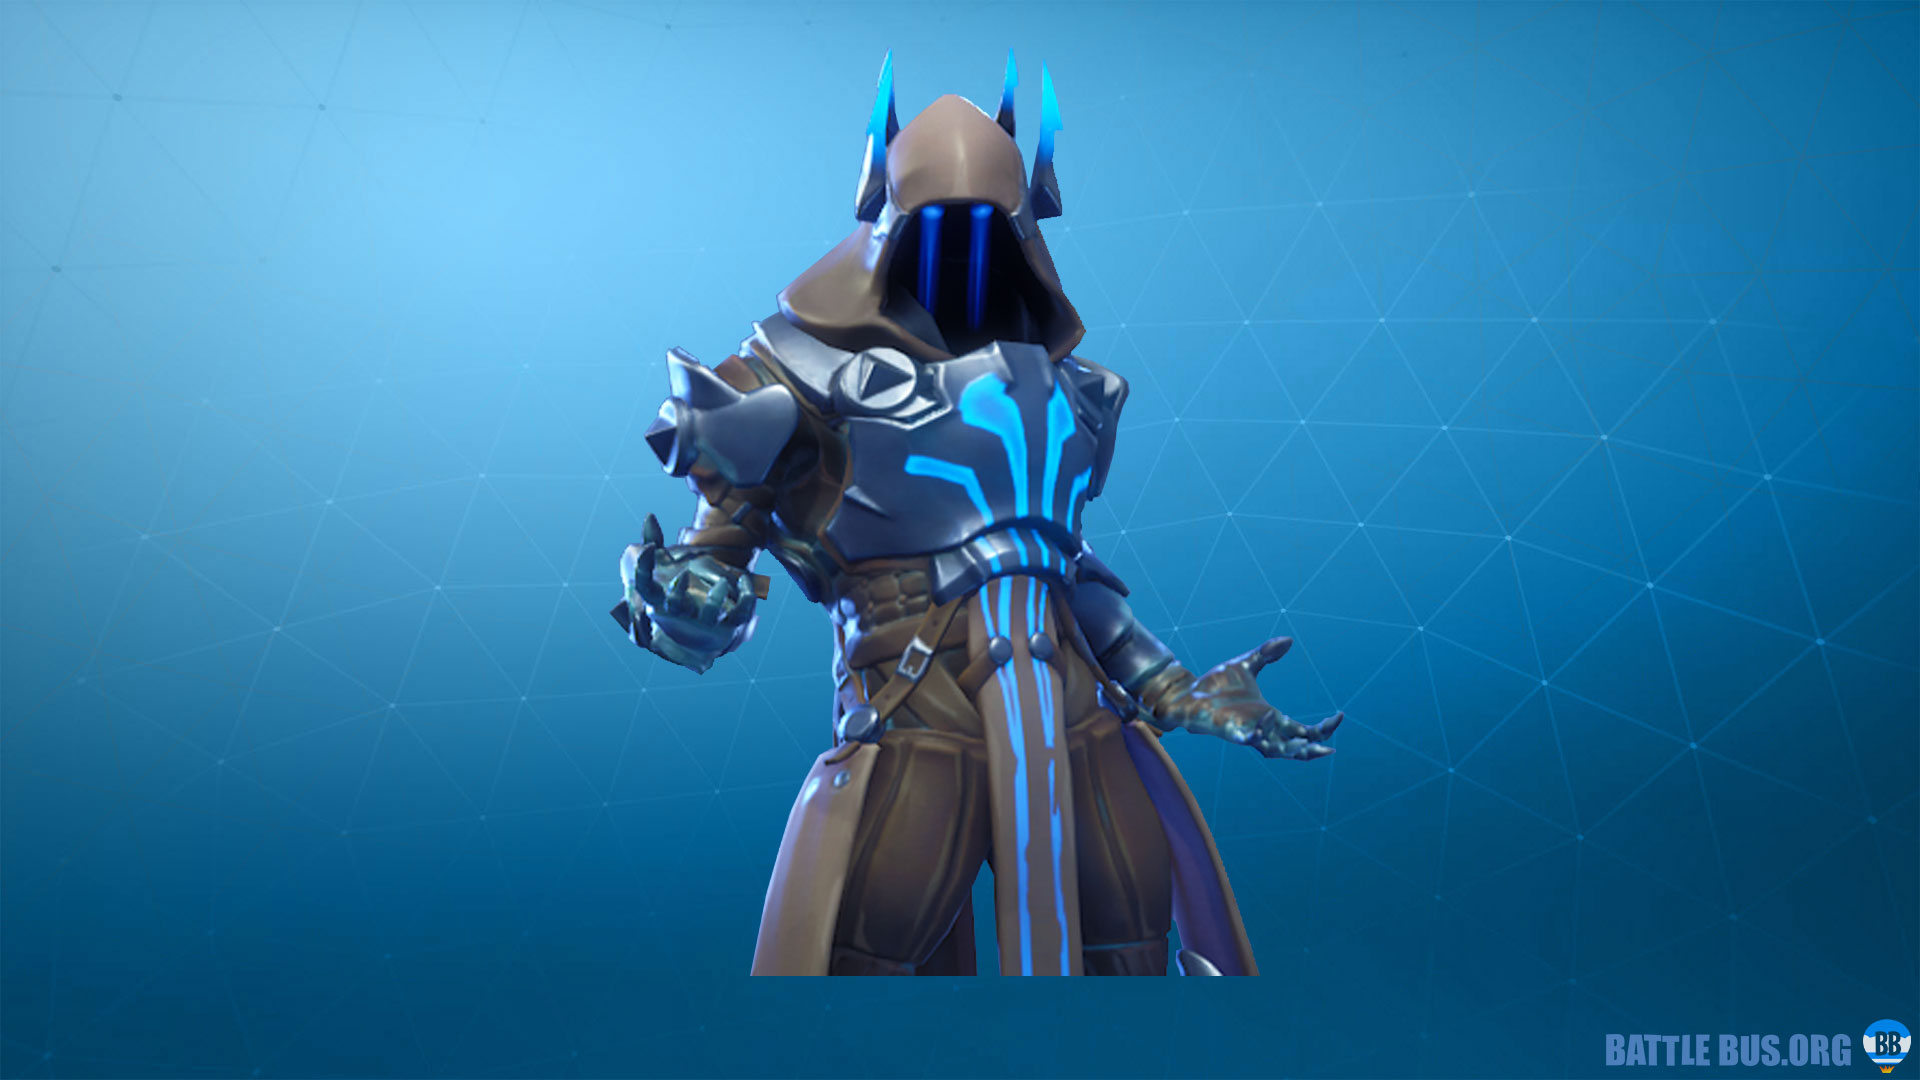 Ice king Fortnite Skin   Tier 100 season 7 Battle Pass outfit 1920x1080